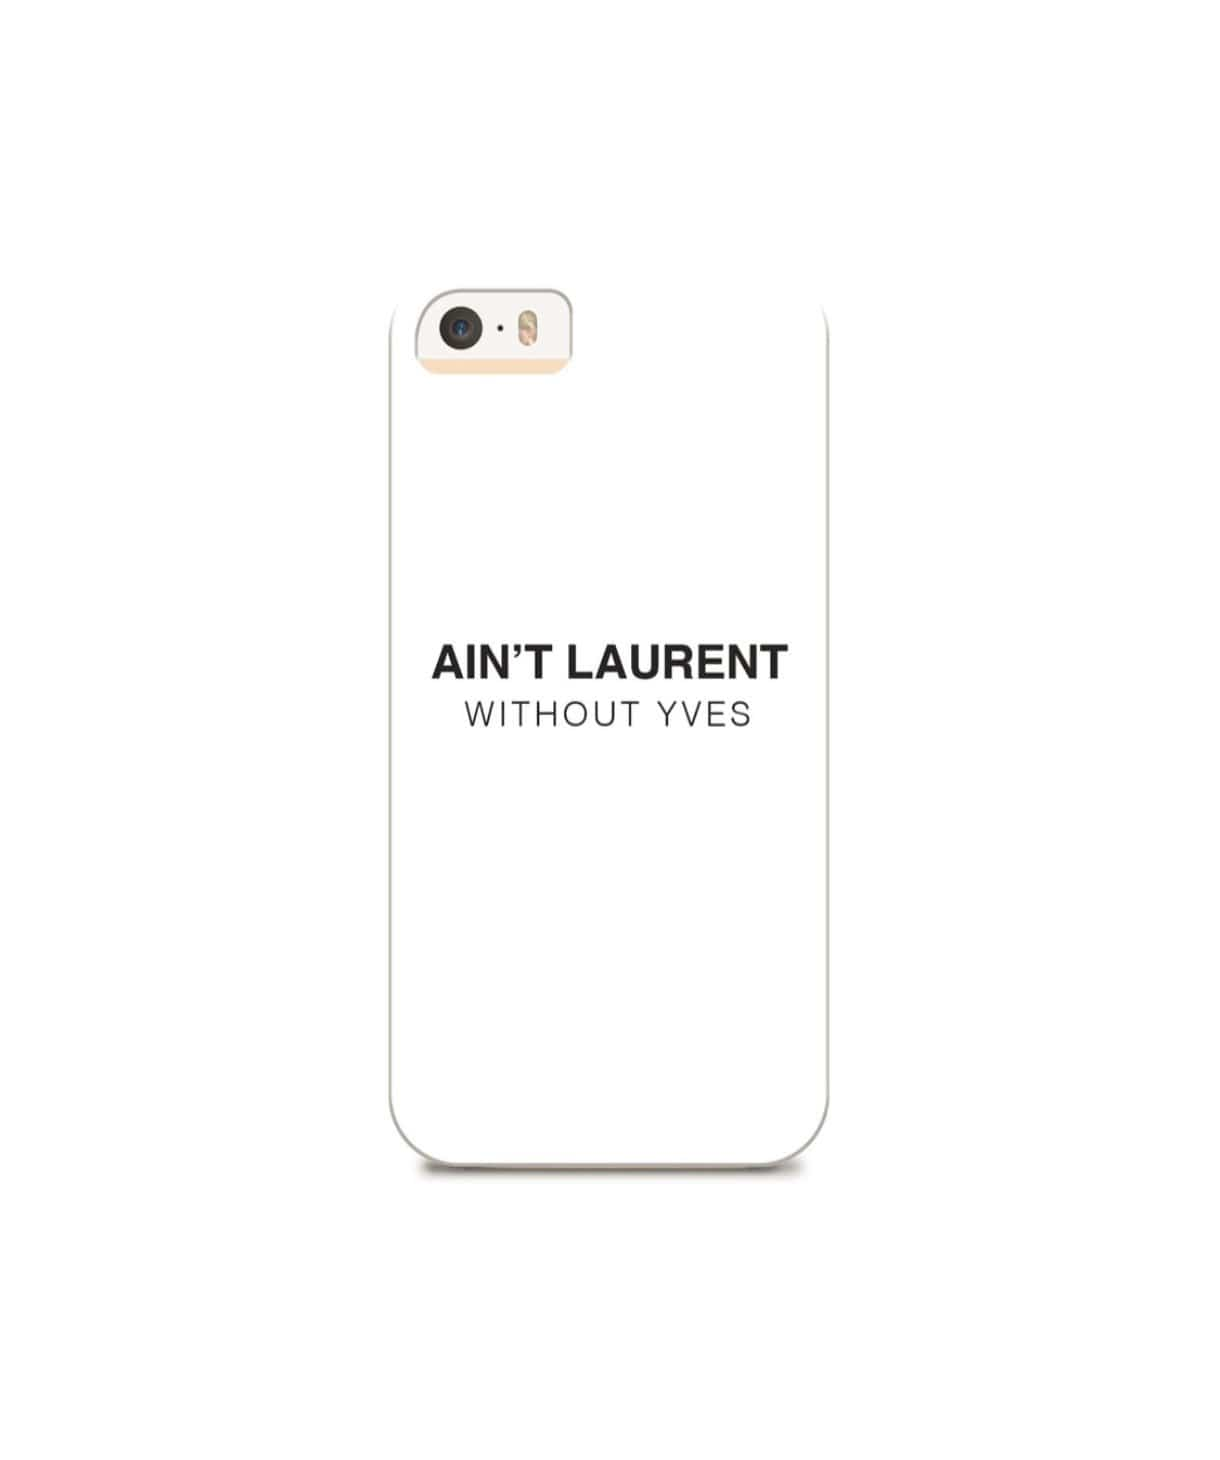 Ain't Laurent IPhone Cover (Personalisation Available) - Uptownie